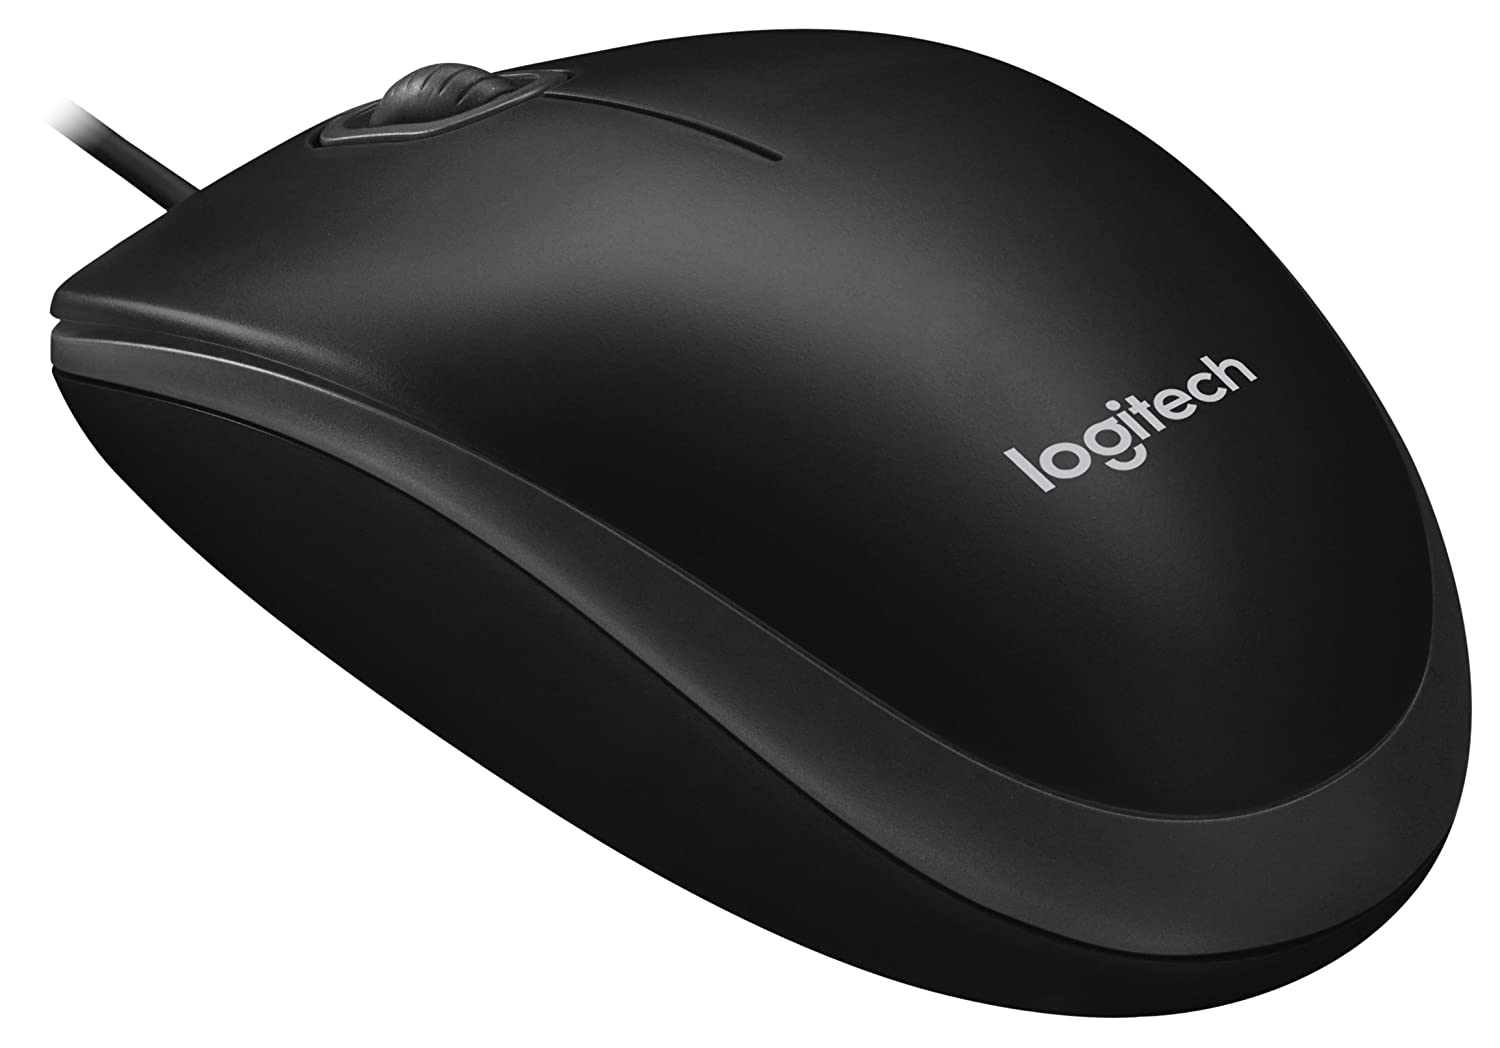 Buy Logitech B100 Optical Mouse Black Online At Low Computer Parts Labeled Inside A Diagram For Kids Prices In India Reviews Ratings